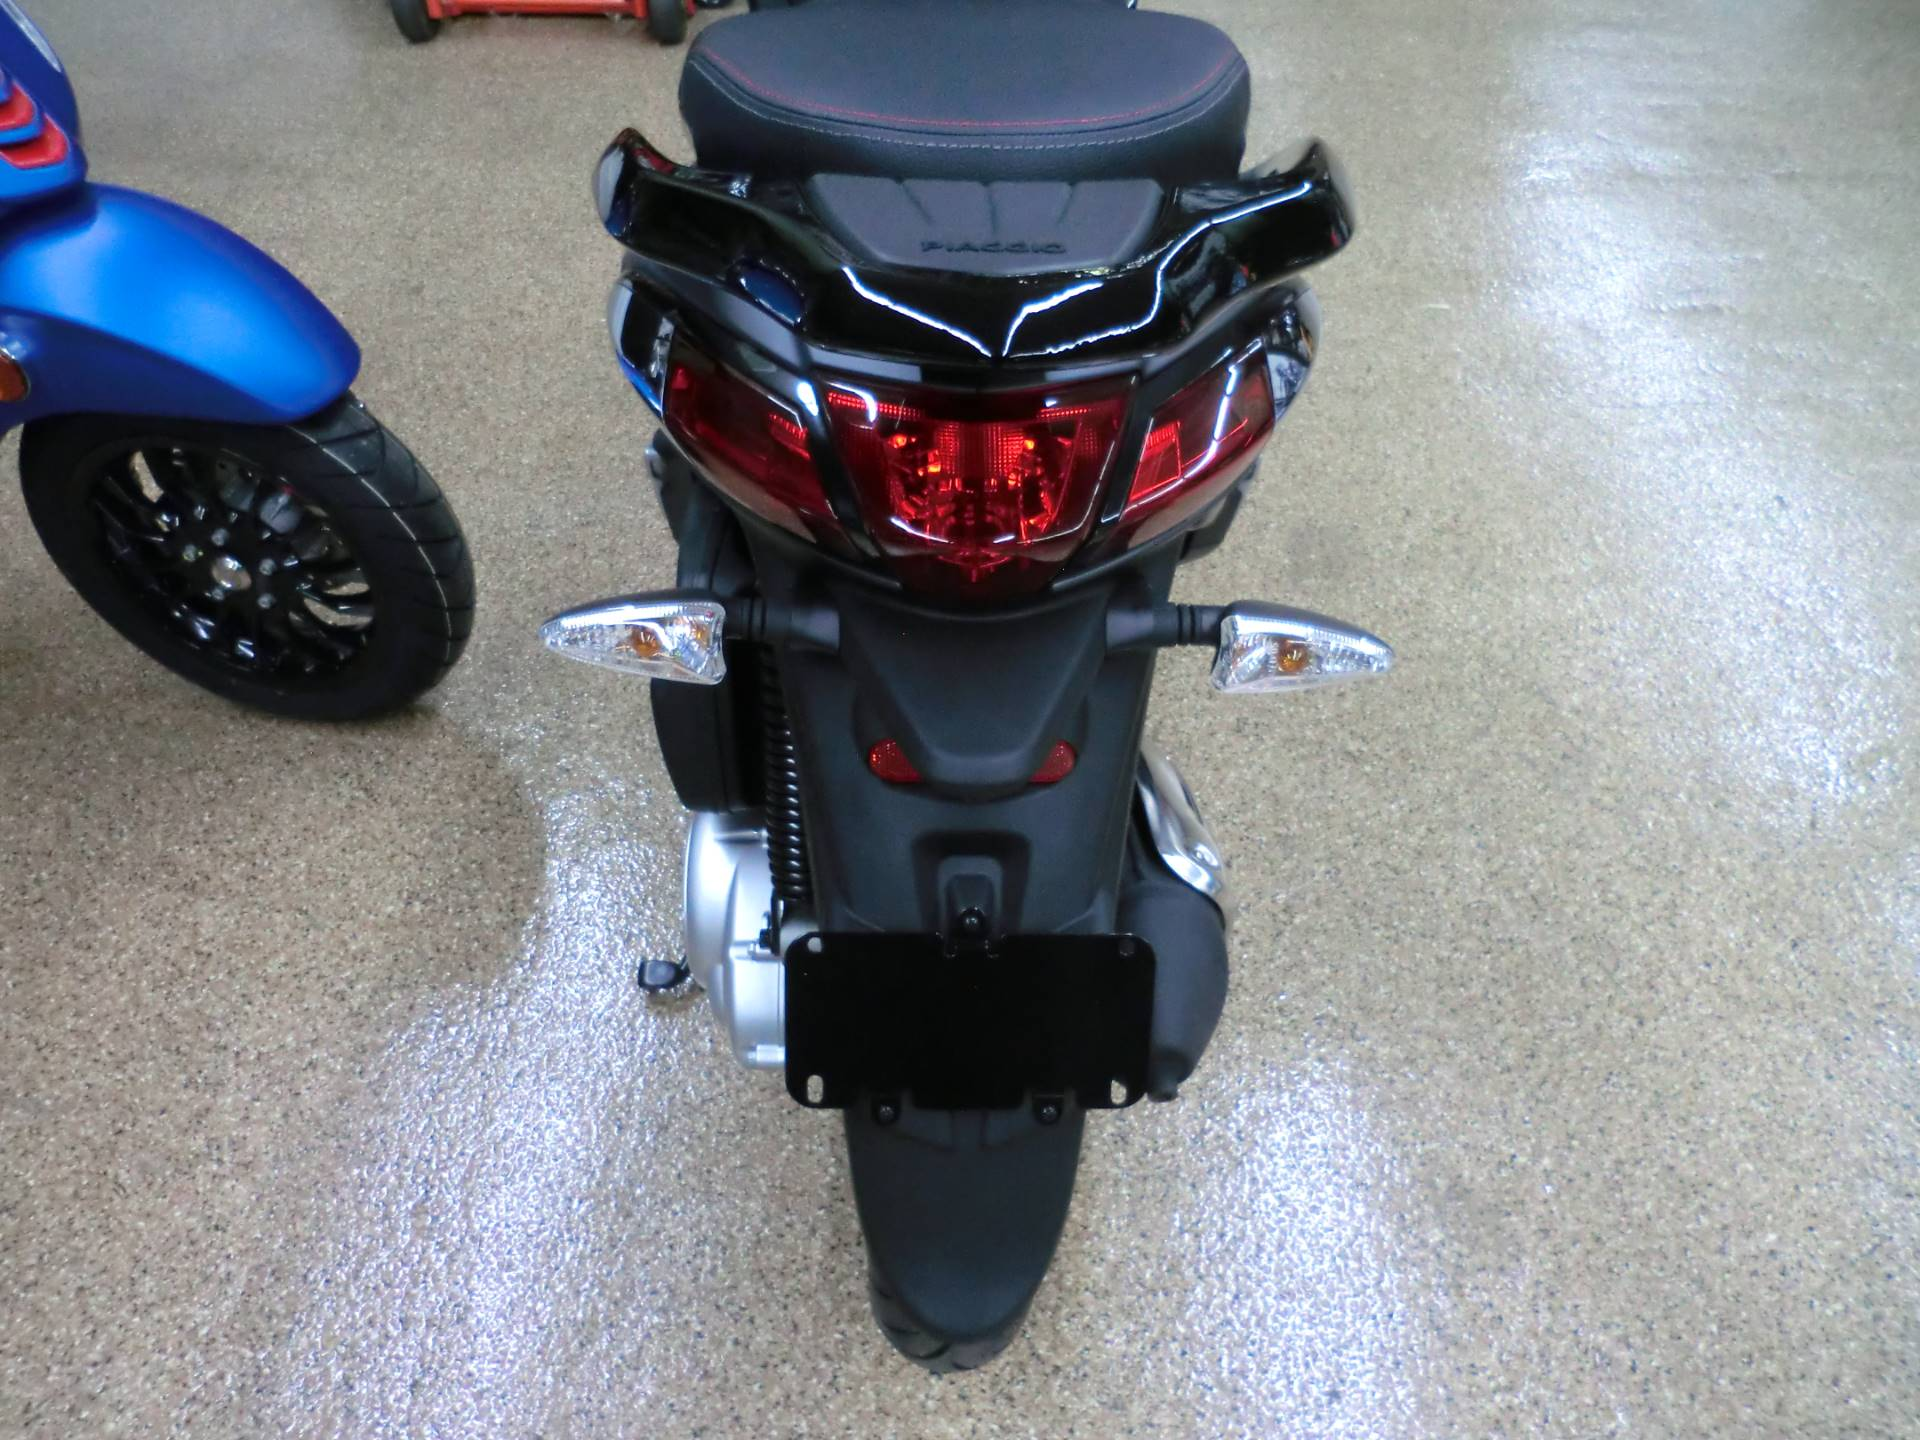 2020 Piaggio Liberty S 50 in Downers Grove, Illinois - Photo 5